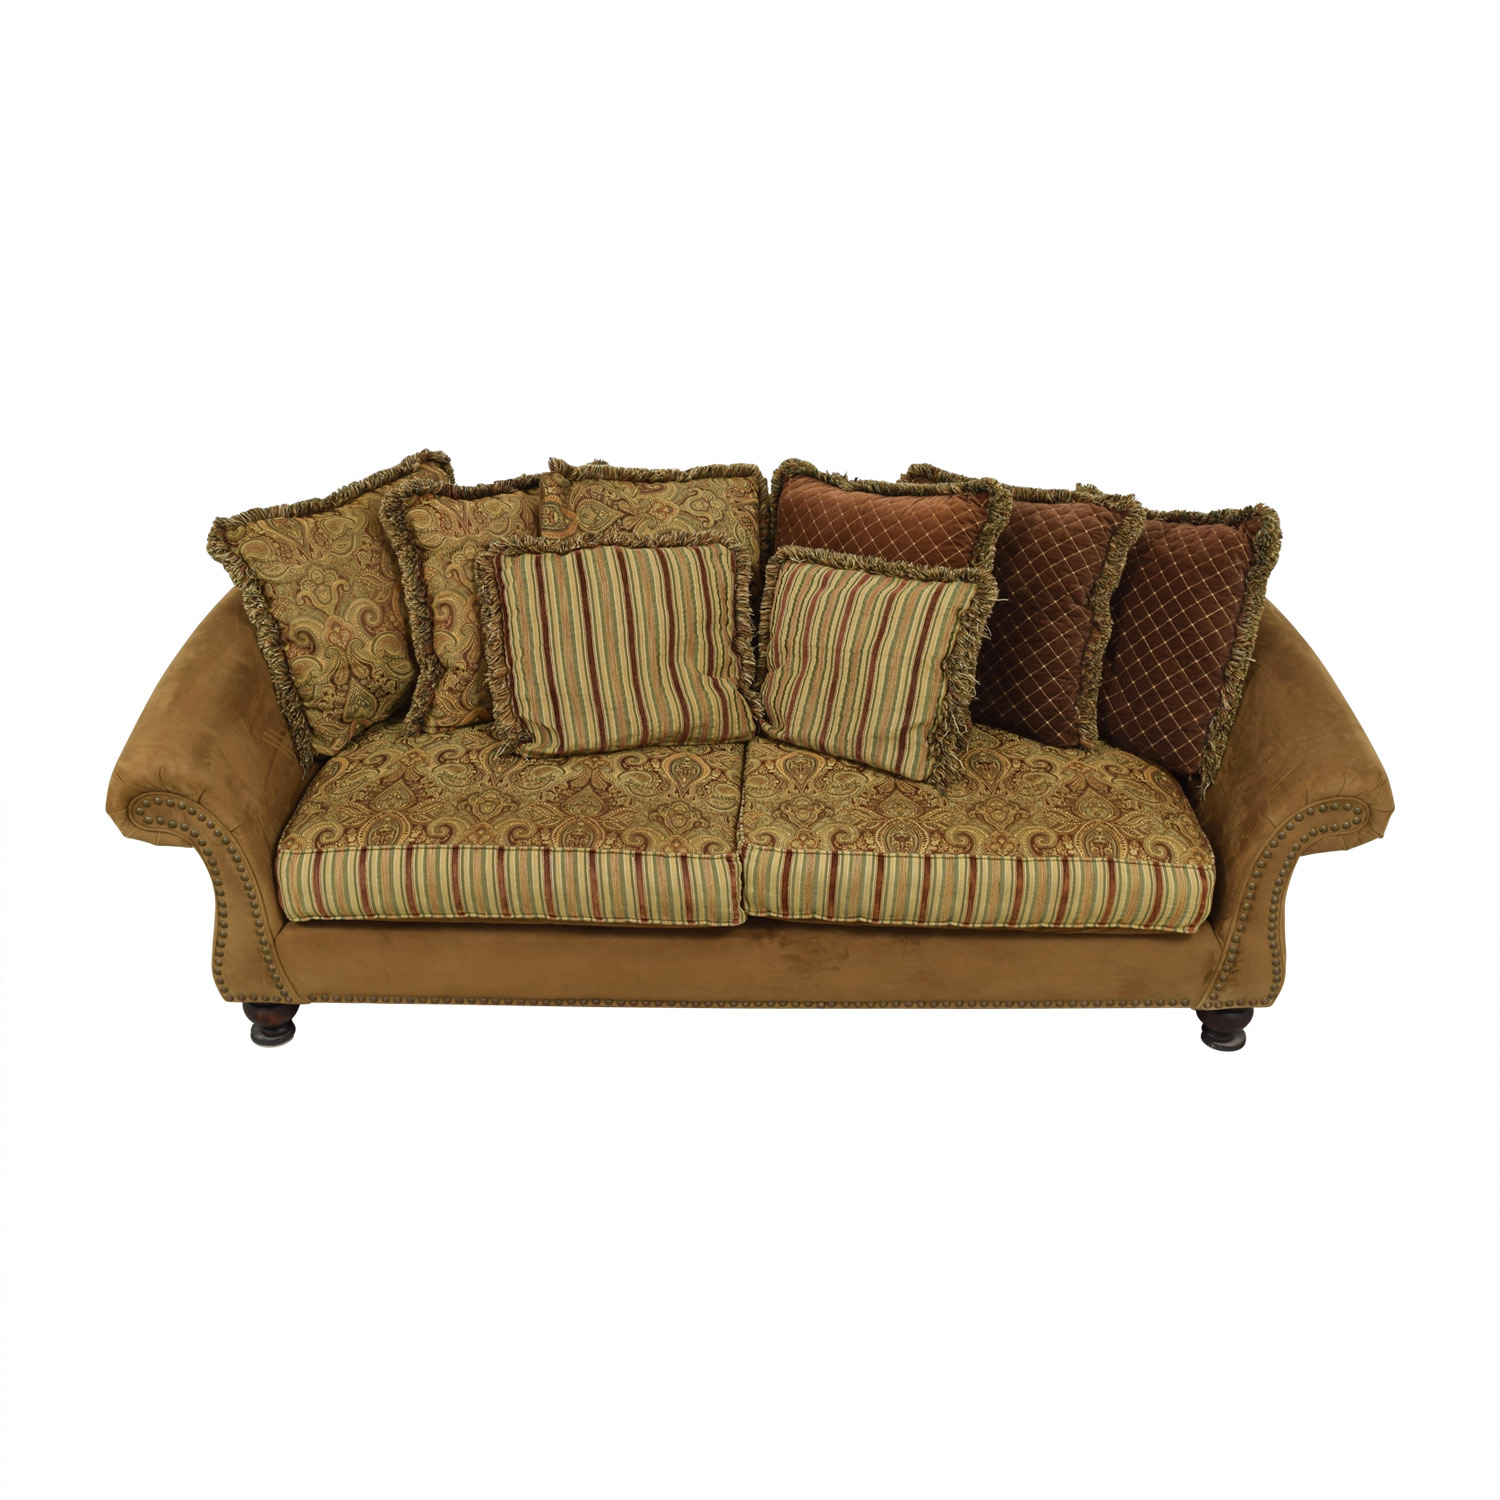 Cindy Crawford Home Cindy Crawford Home Microfiber Faux Suede Nailhead Two-Cushion Couch nyc